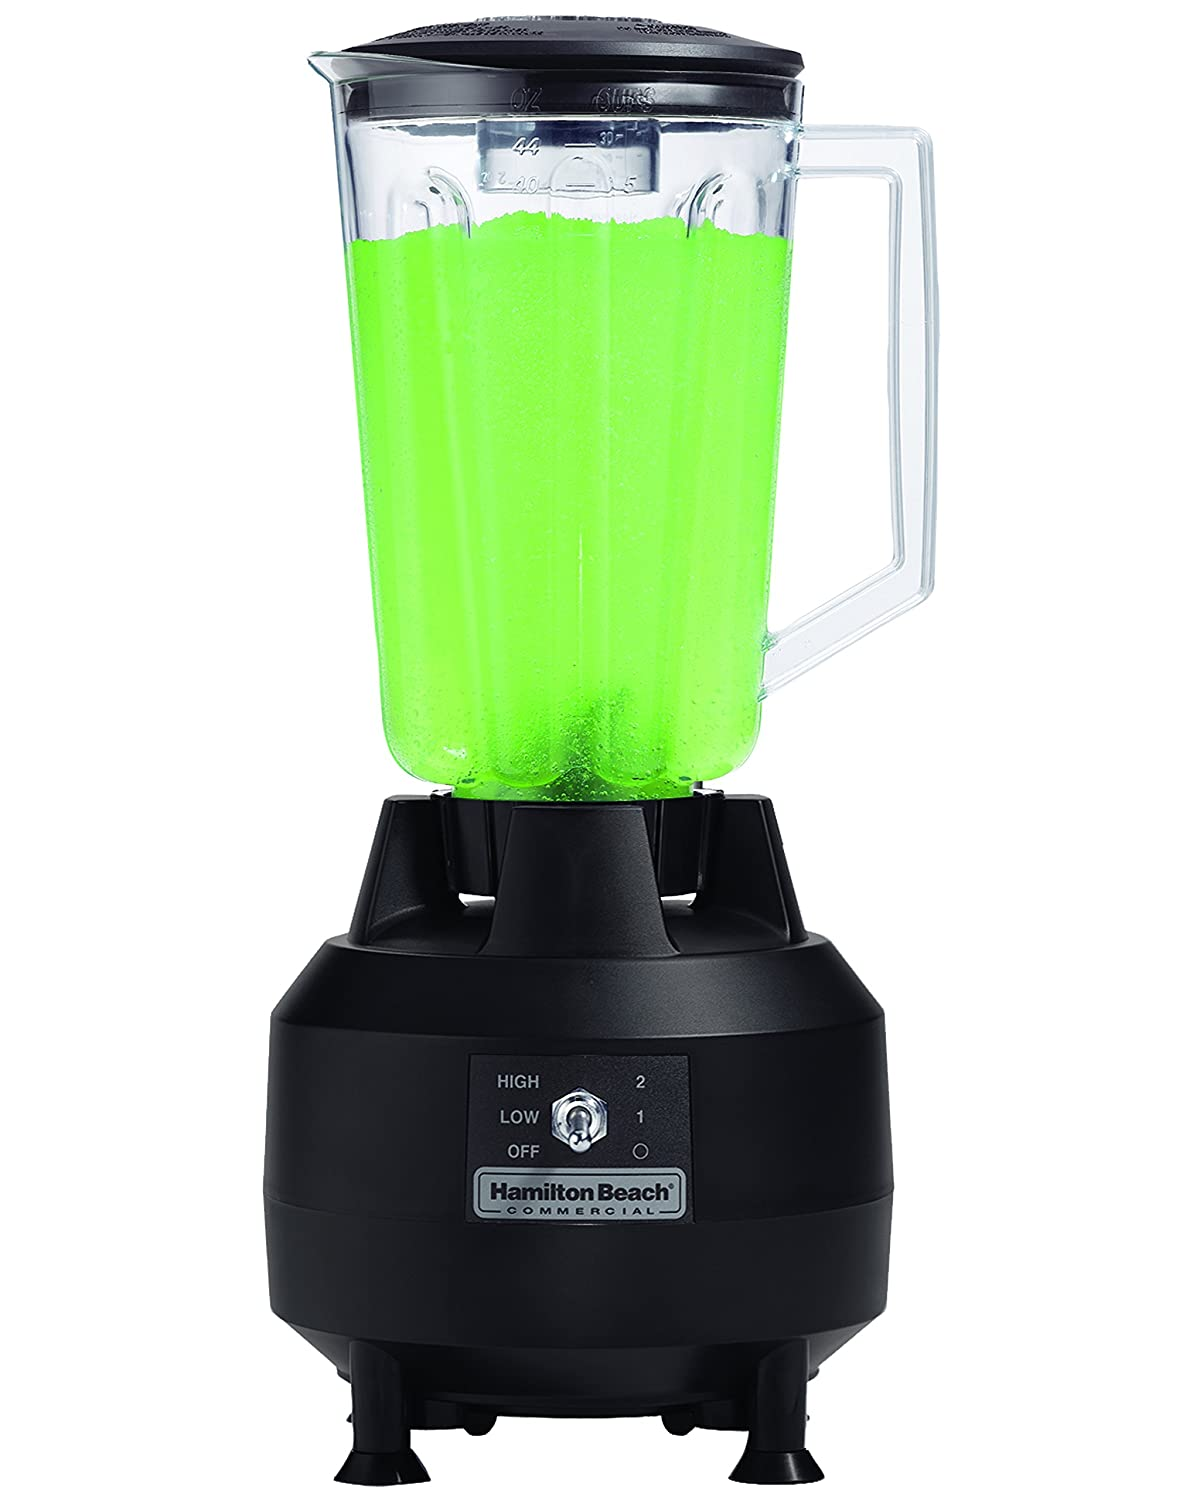 Hamilton Beach Commercial hbb908 de CE Bar Blender, Negro